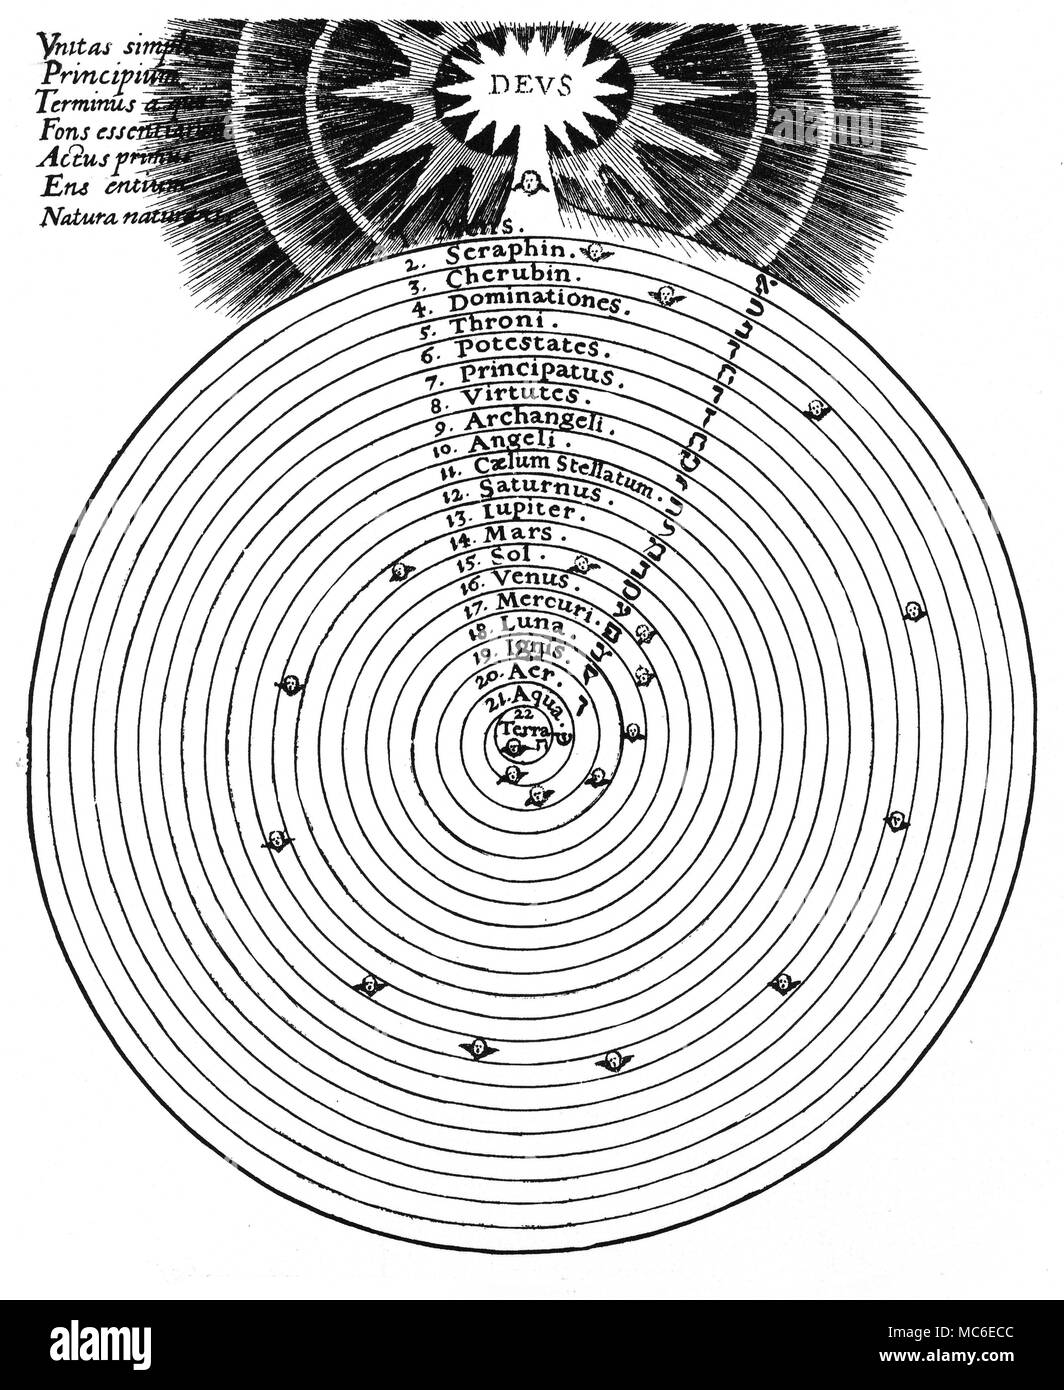 ASTROLOGY - THE SPIRAL OF HIERARCHIES The endless spiral of the spiritual descent from the Godhead, represented as arising from the Mens (Mind) of God, and passing down through the spheres of the Hierarchies, from the highest Seraphim, down to the Ptolemaically centred Earth.  Each of the 22 gyres of the spiral is associated with a celestial hierarchy (which is traditionally associated with a planetary sphere), or with one of the elements, the darkest and heaviest of which is the physical Earth.  Further, the 22 gyres are also connected with one of the 22 letters of the Hebrew alphabet (and th - Stock Image